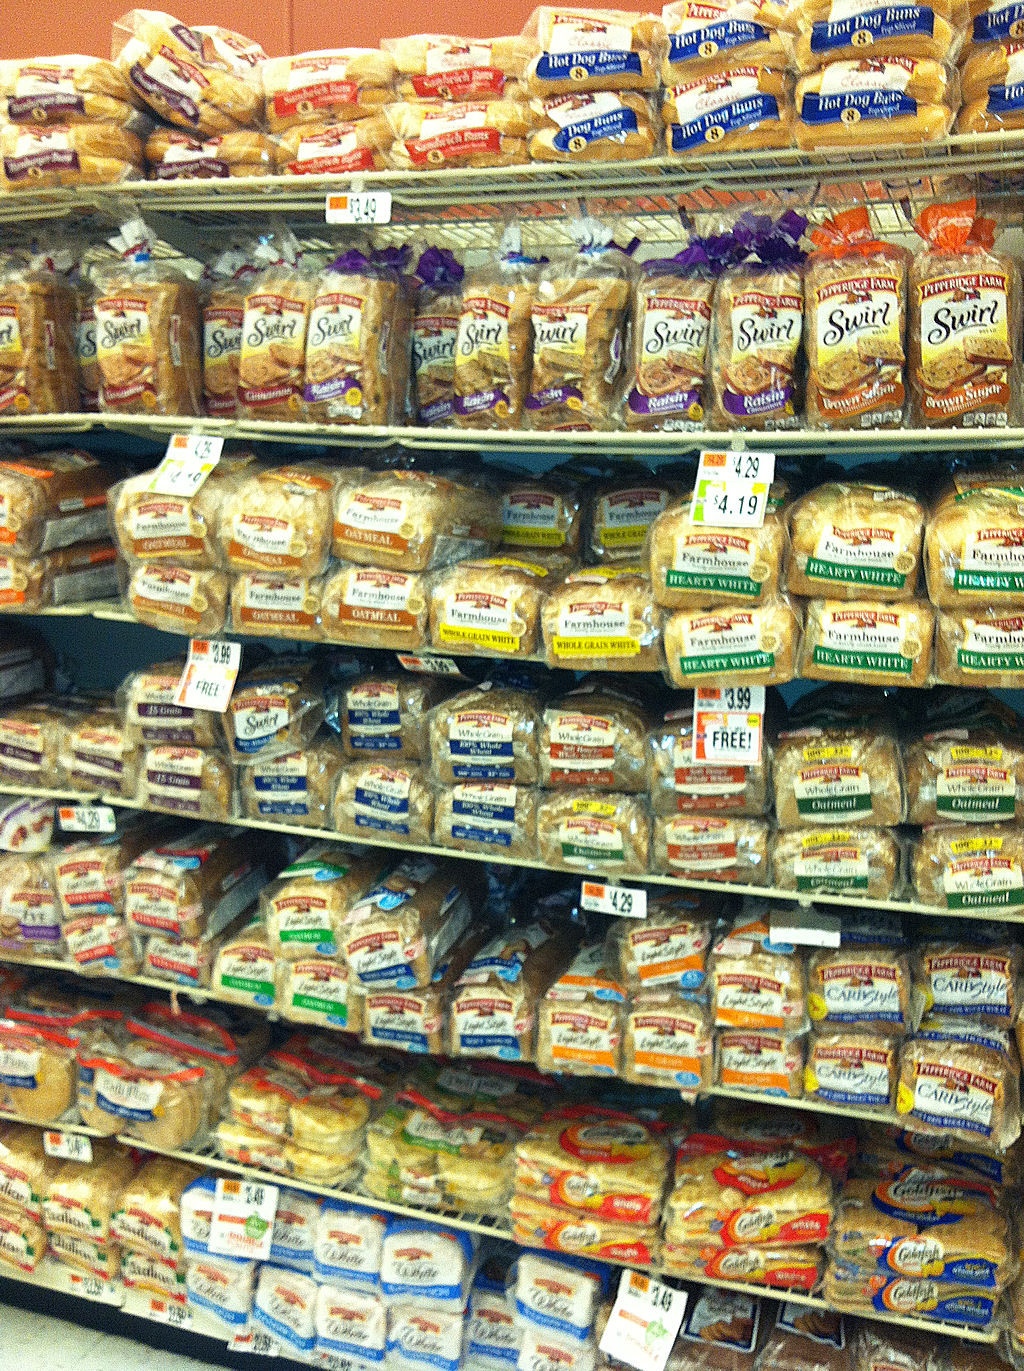 Healthy Pita Bread Brands  How to Be e a Food Label Expert Healthy Breads